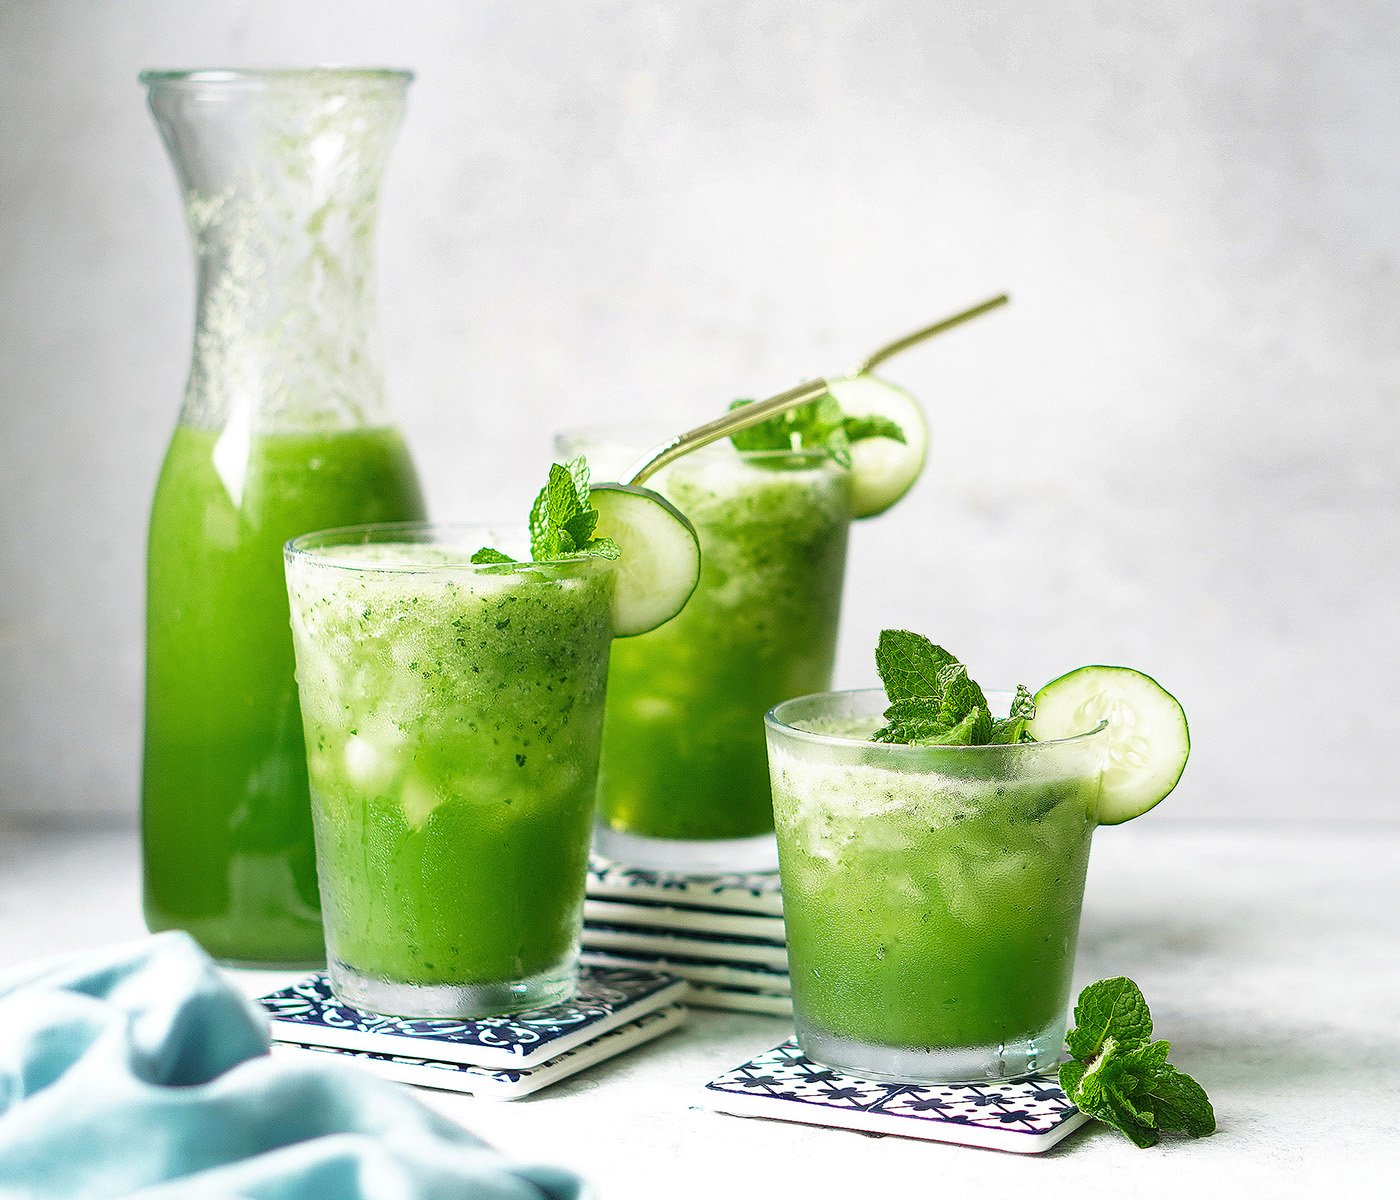 A jar with 3 glasses with Agua De Pepino garnished with a slice of cucumber and mint